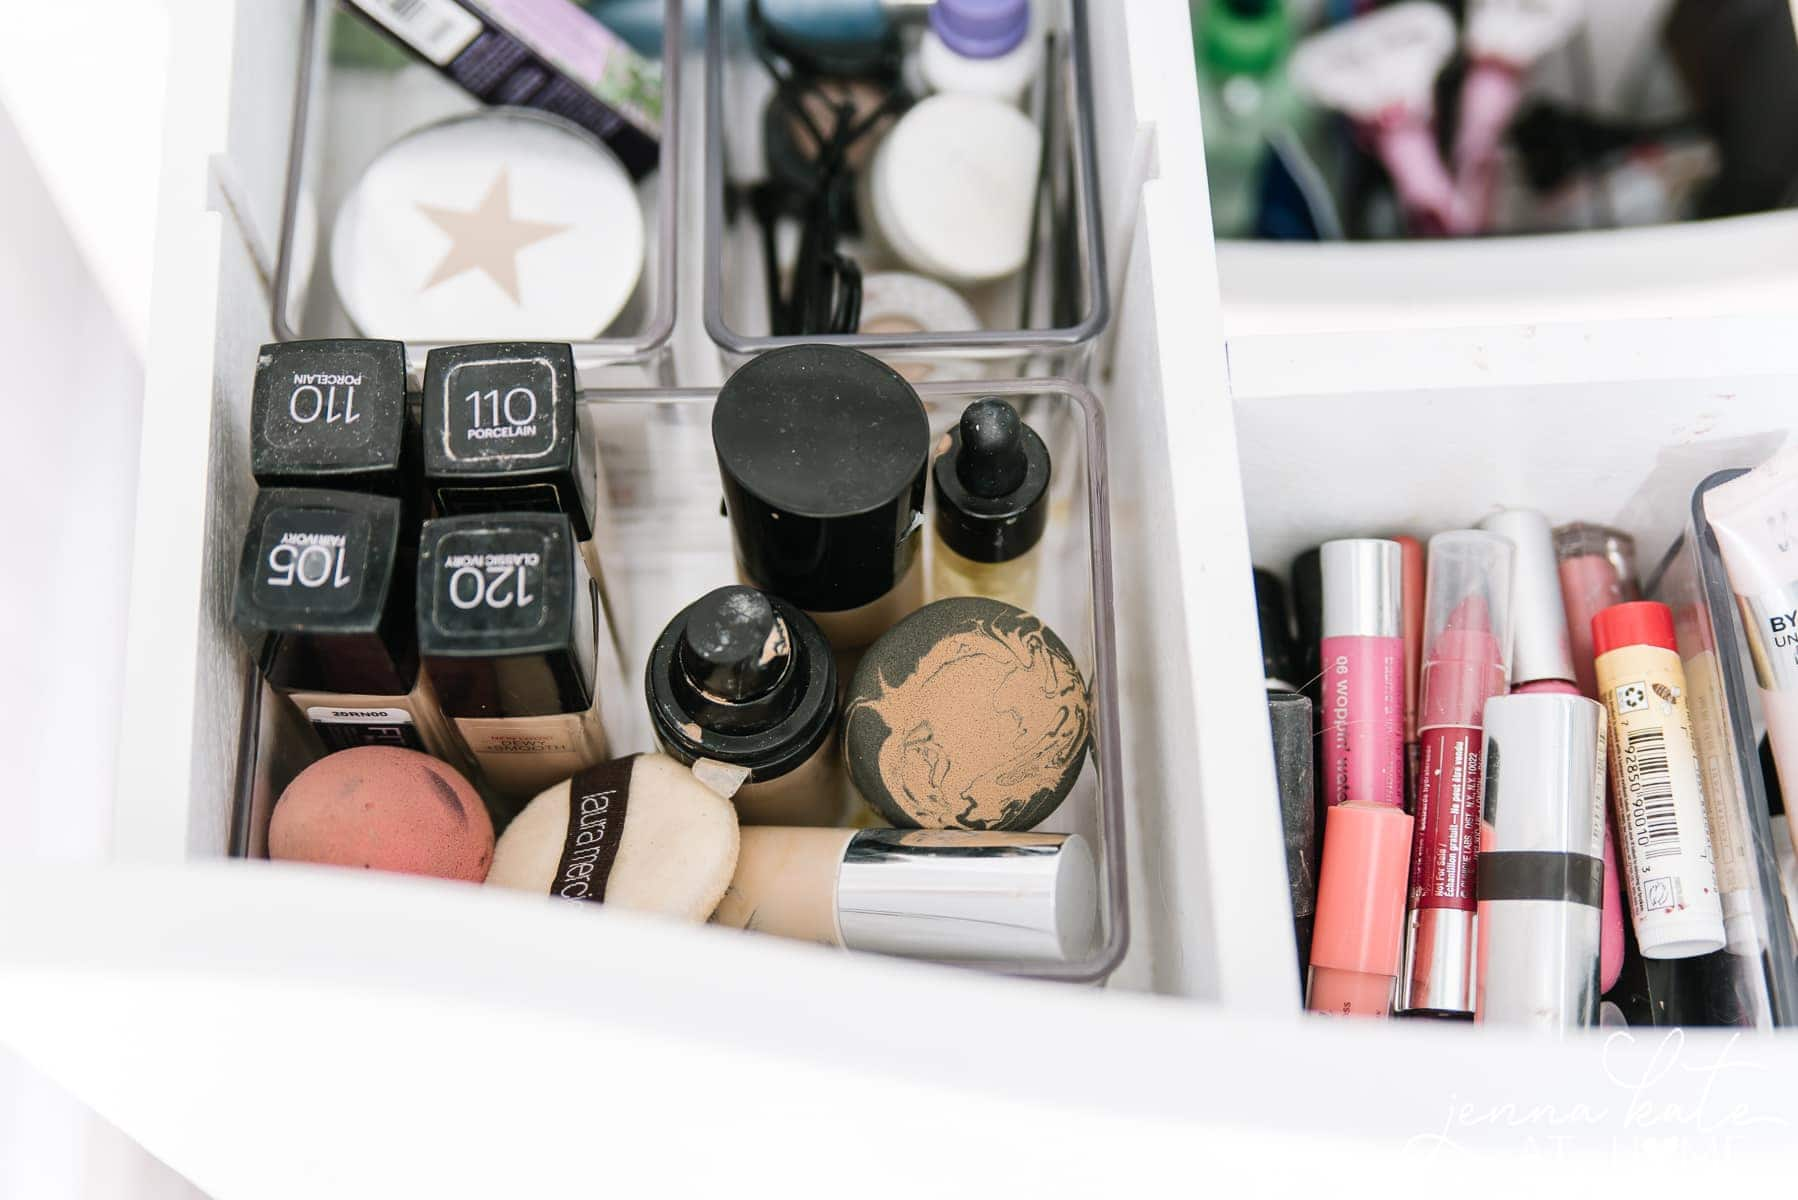 Organize bathroom drawers full of makeup and toiletries